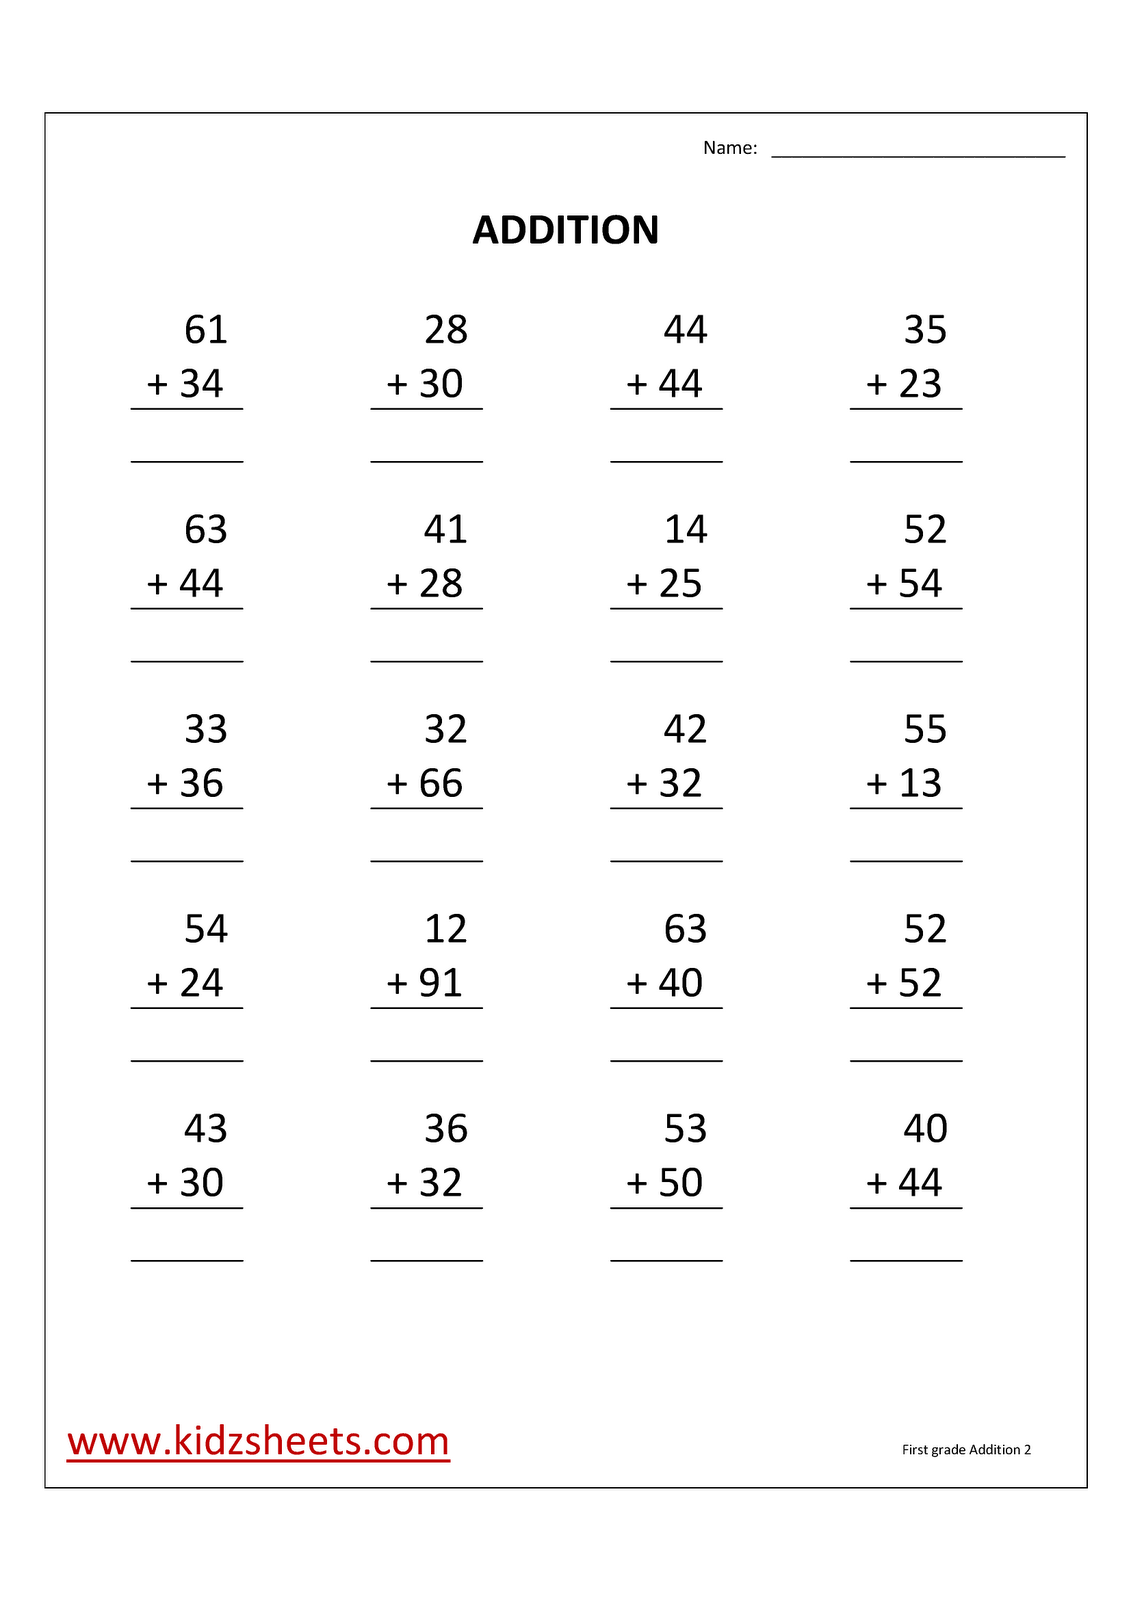 Math Worksheets For 1St Grade Addition And Subtraction – 1st Grade Math Worksheets Addition and Subtraction